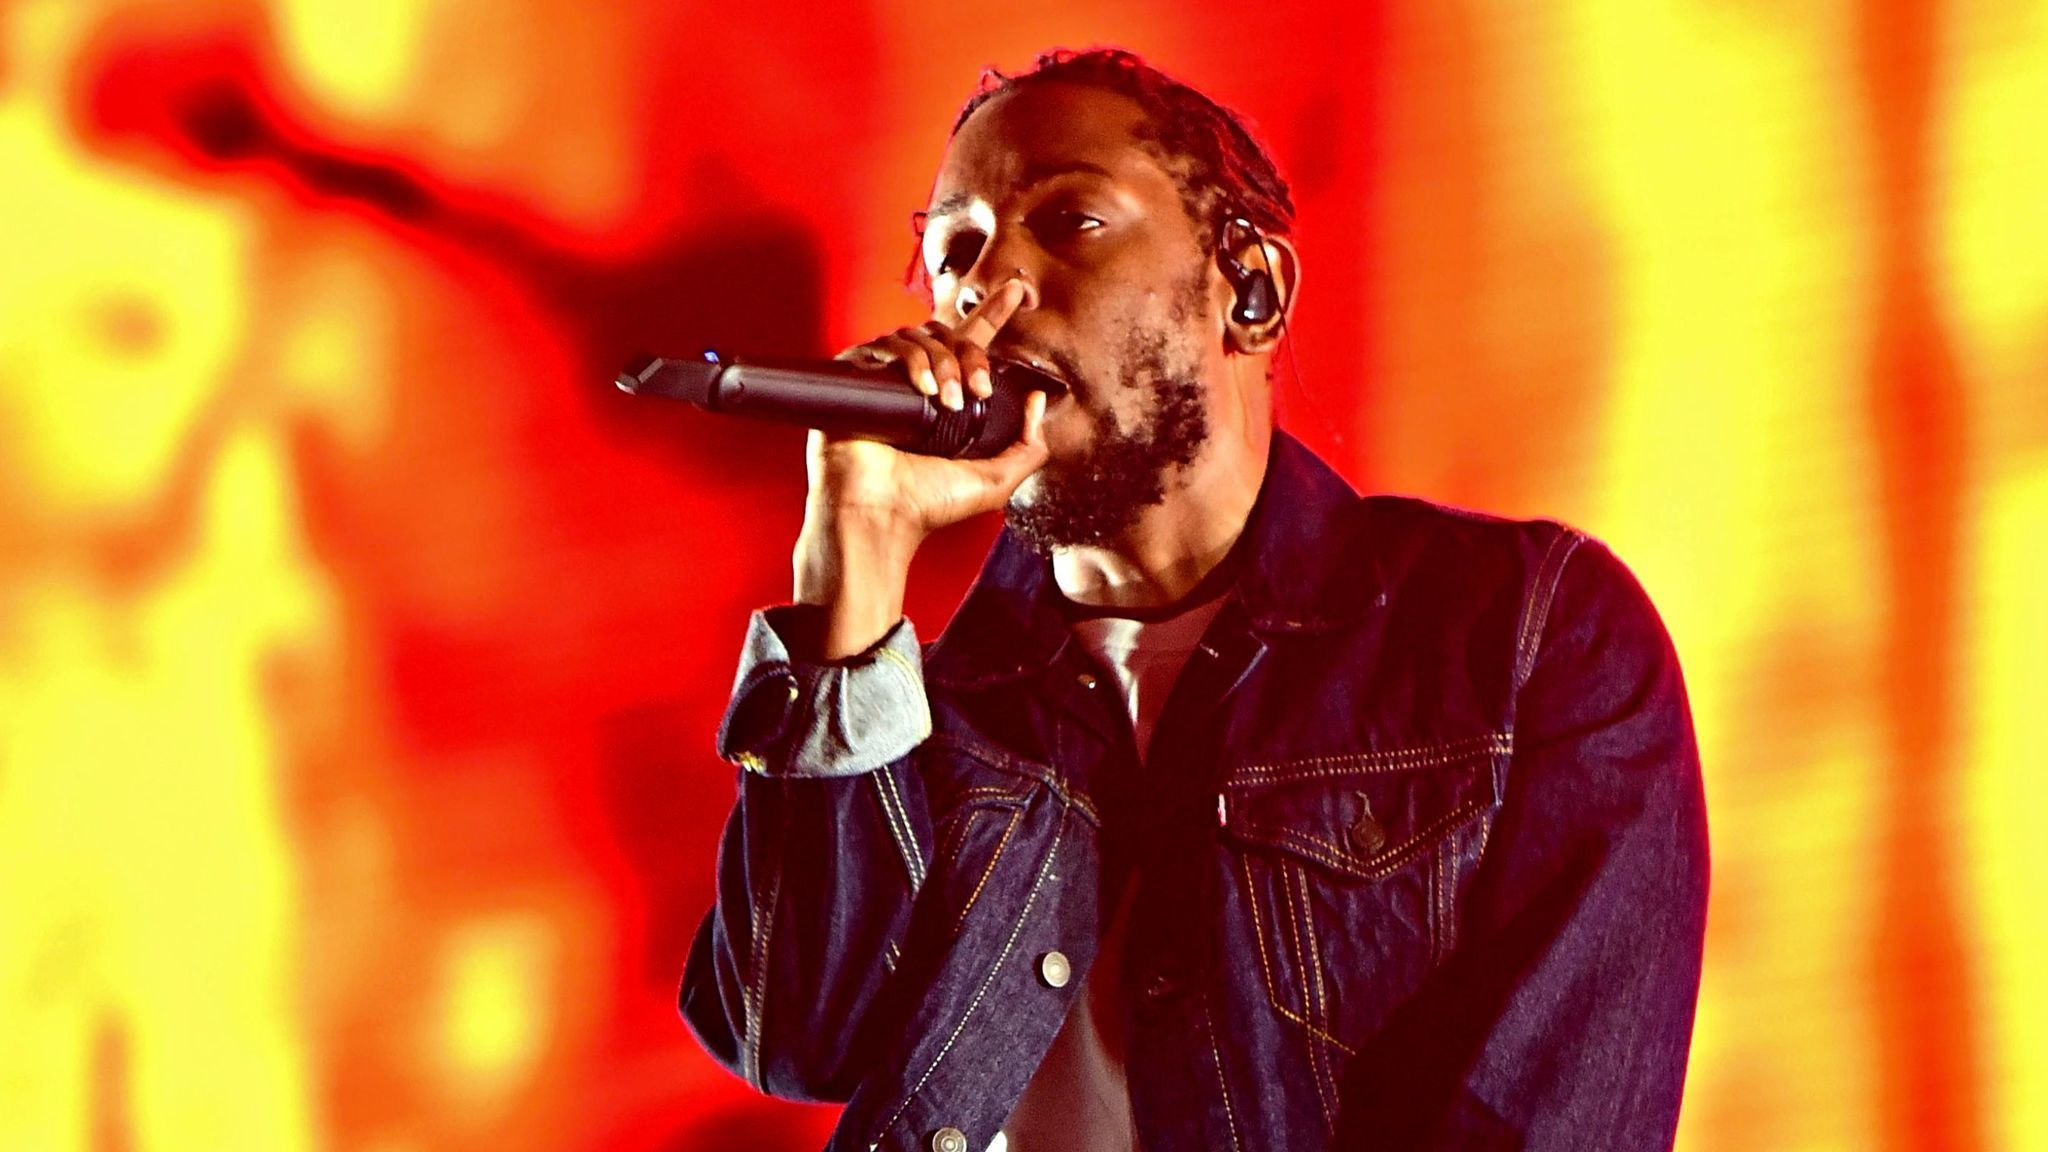 Concert review kendrick lamar fast and furious in miami southflorida com